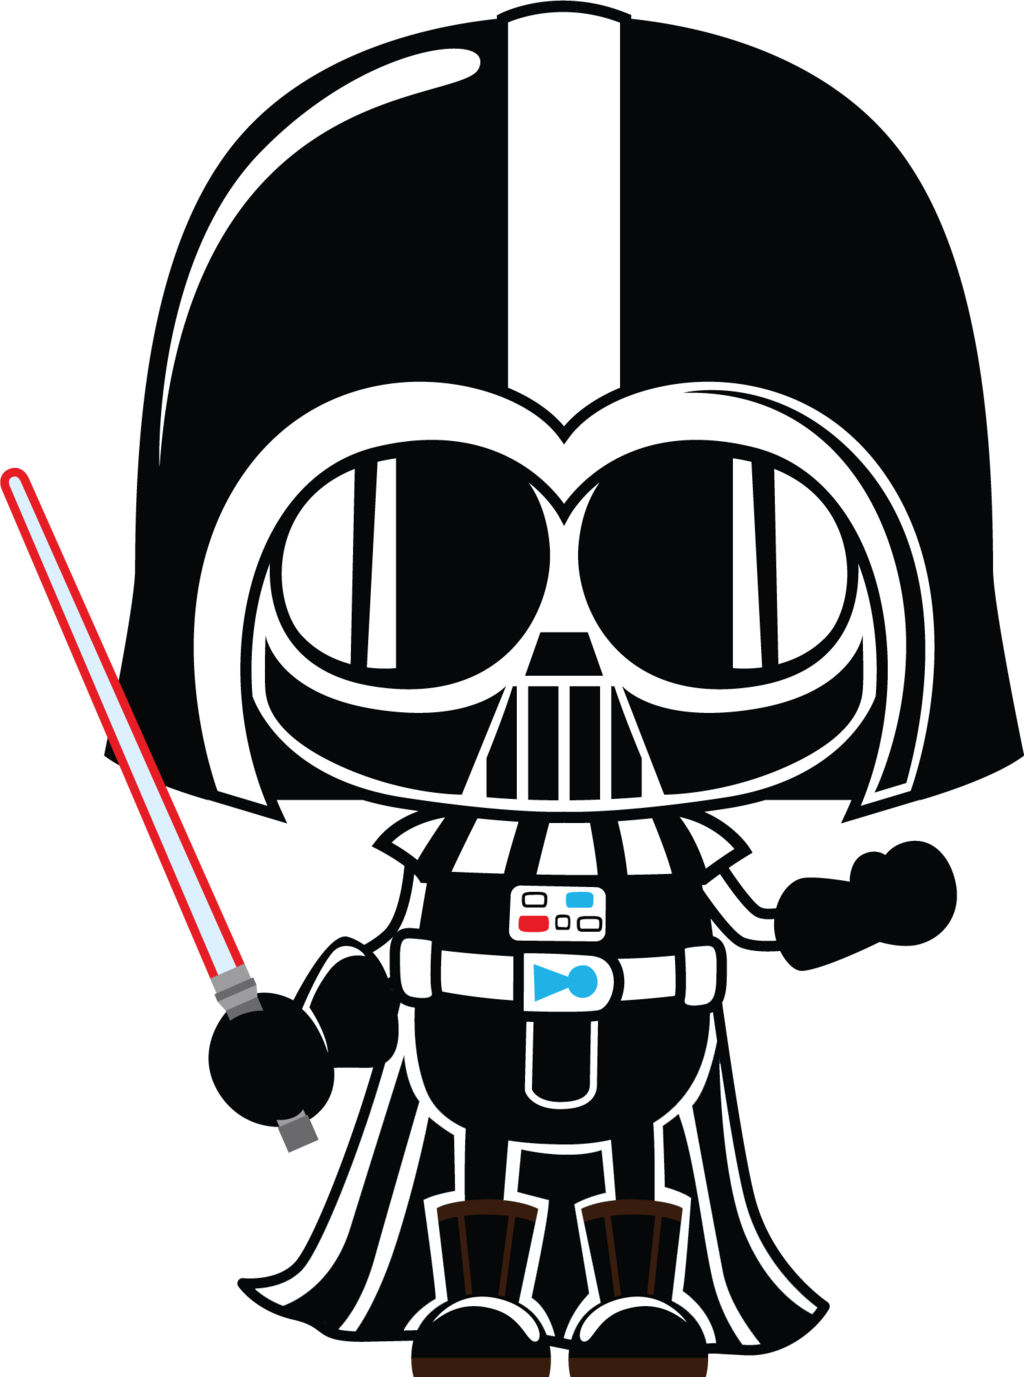 Darth vader by chrispix. Death star clipart